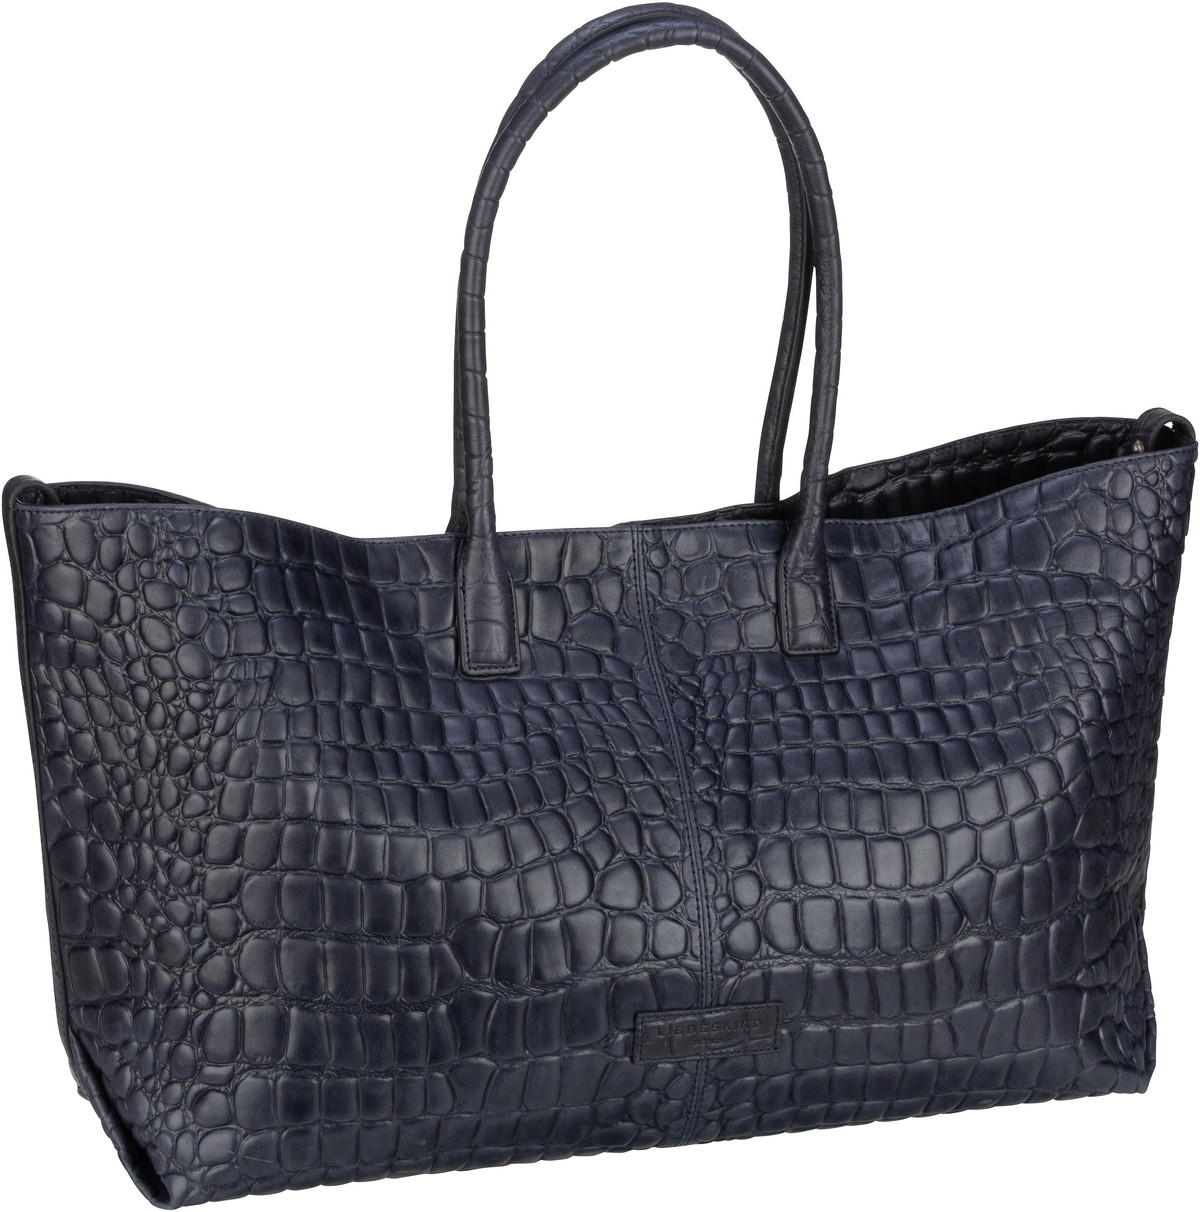 Berlin Handtasche Malibu 2 Chelsea Shopper L Croco Midnight Sky